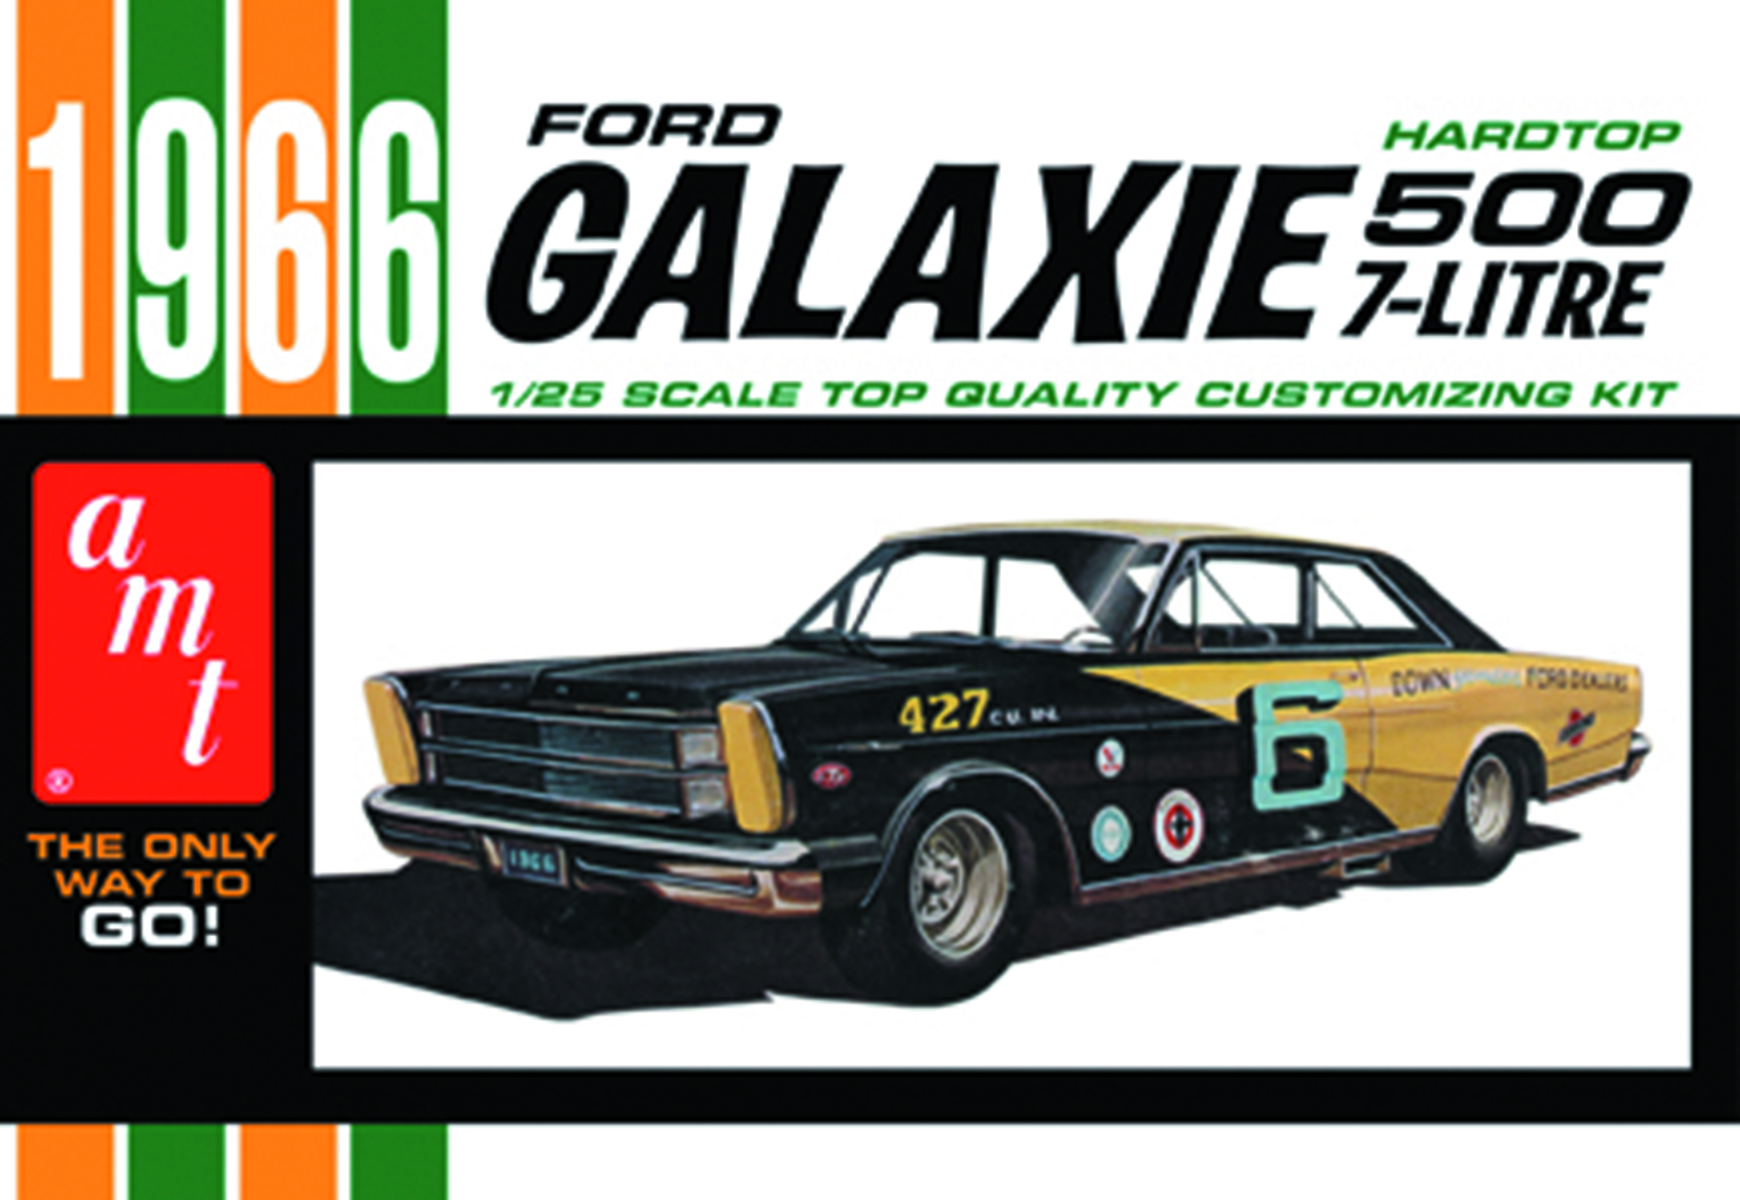 1966 FORD GALAXIE 1/25 MODEL KIT